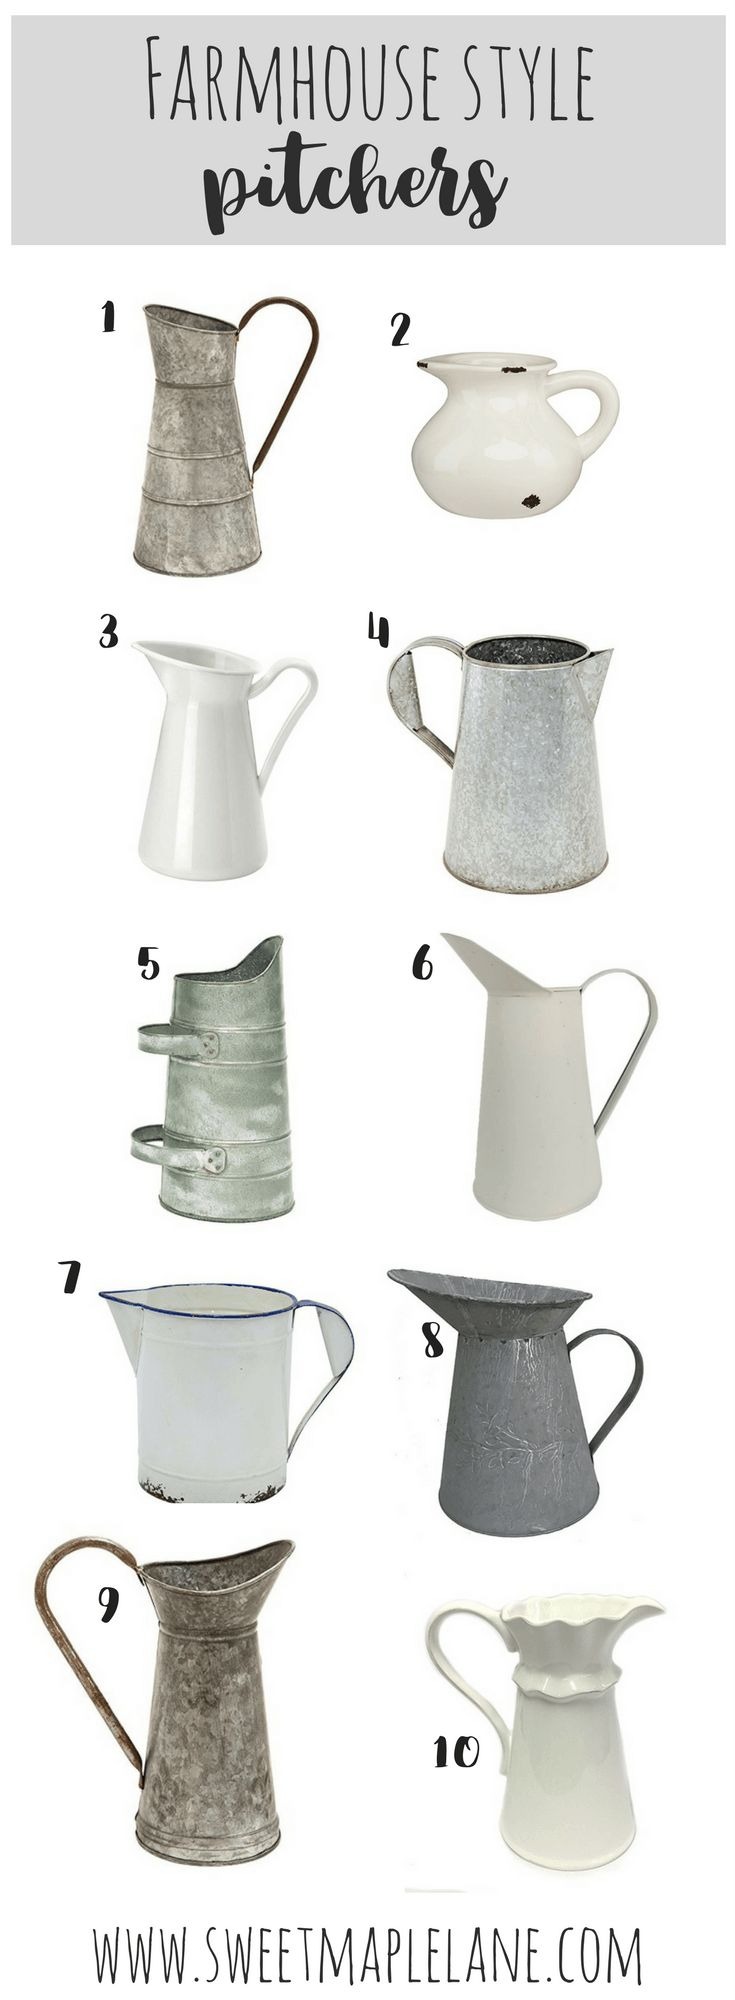 Rustic farmhouse style pitchers to add some farmhouse style to your decor